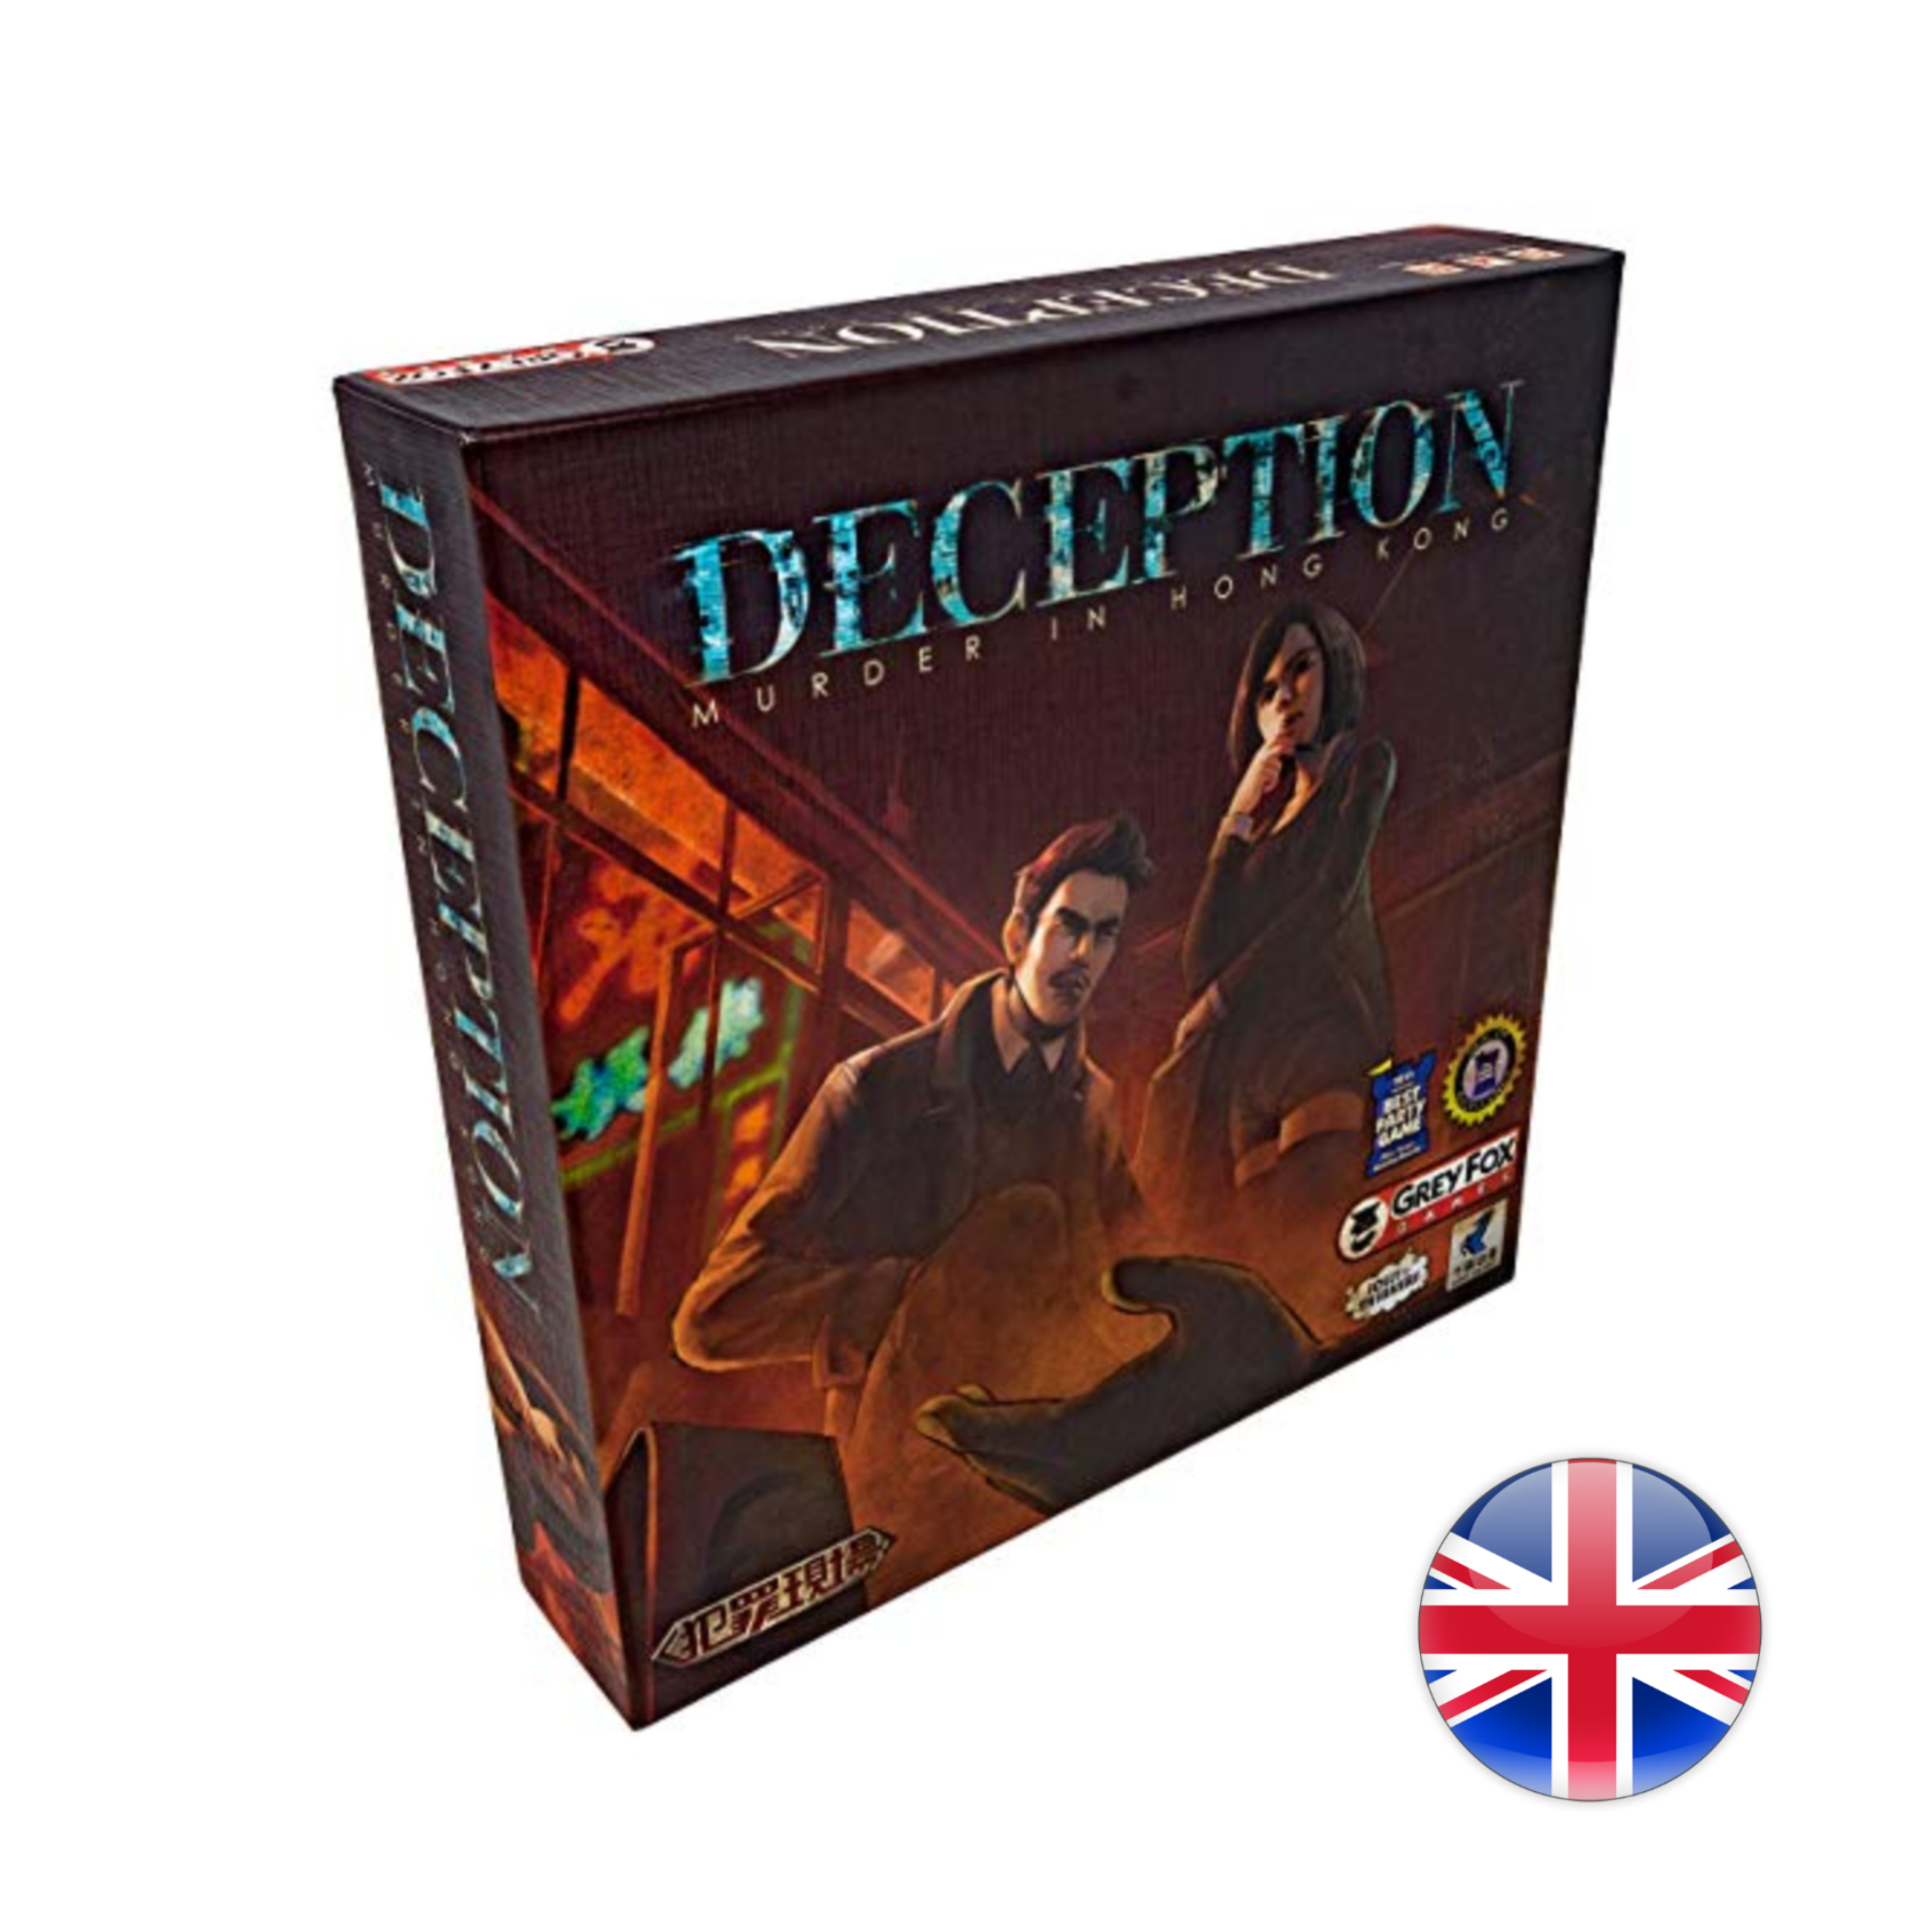 Grey Fox Games Deception: Murder in Hong-KONG